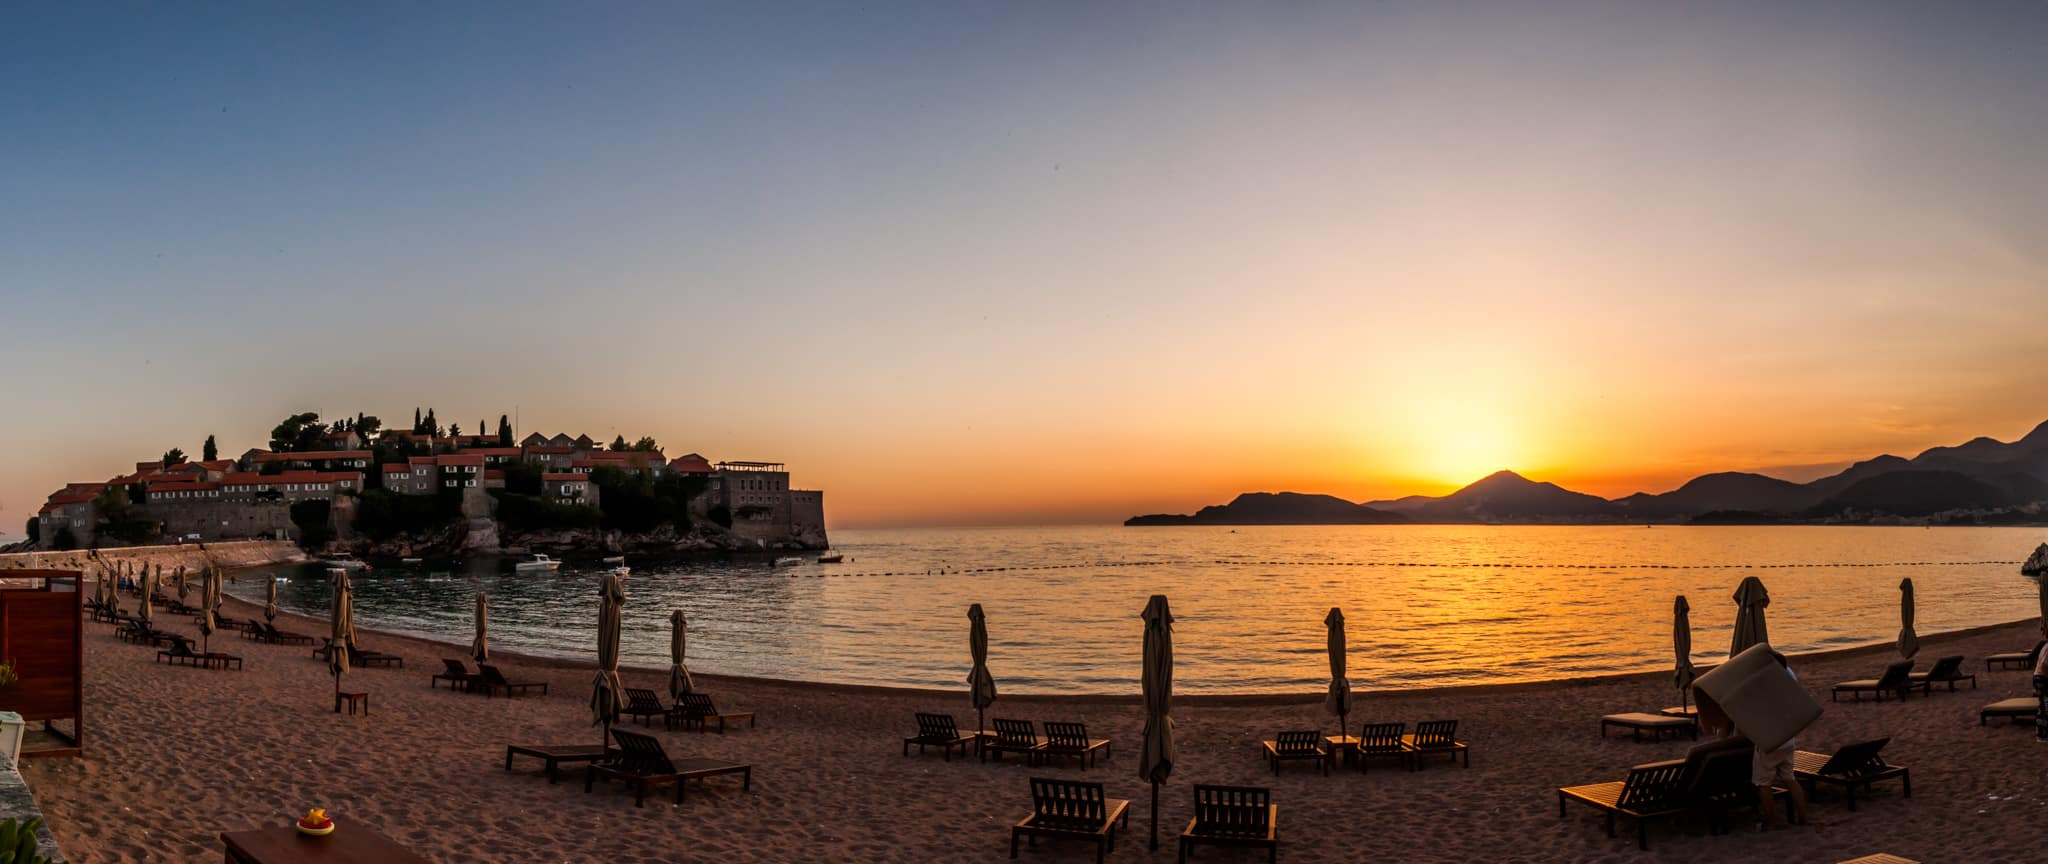 Sunset at Sveti Stefan